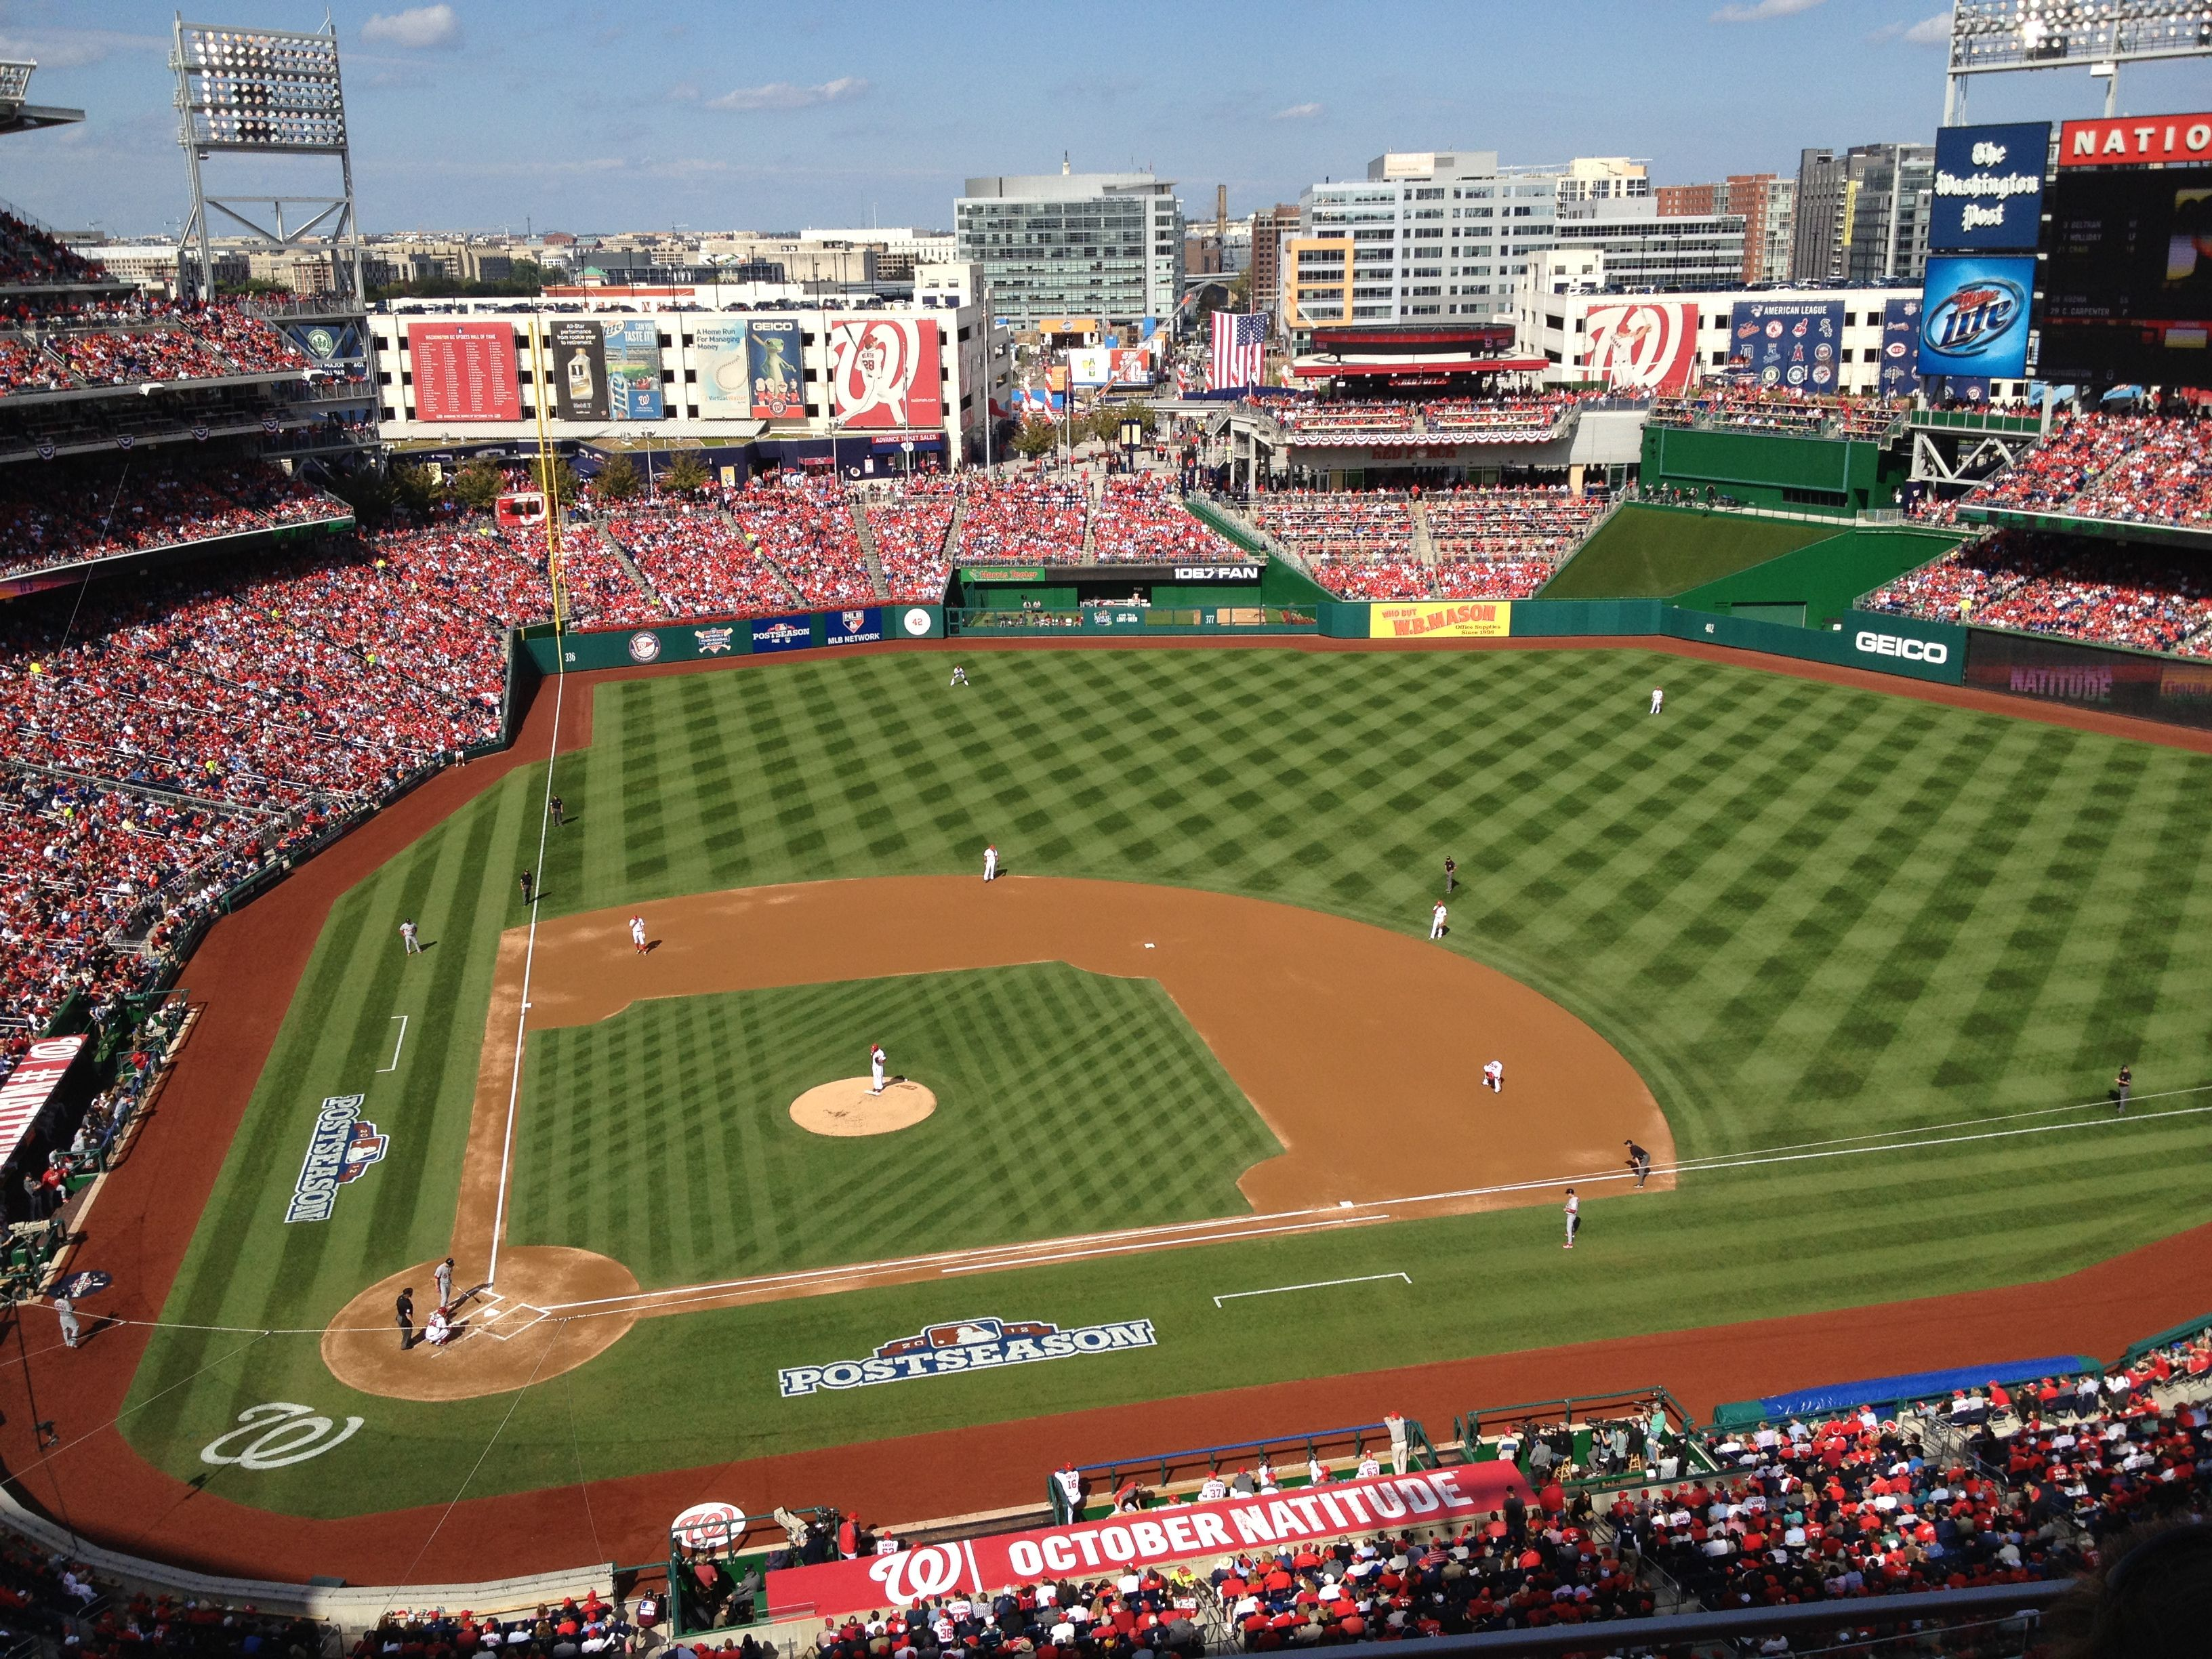 Nats are in the NLDS. One more game to see if there's more